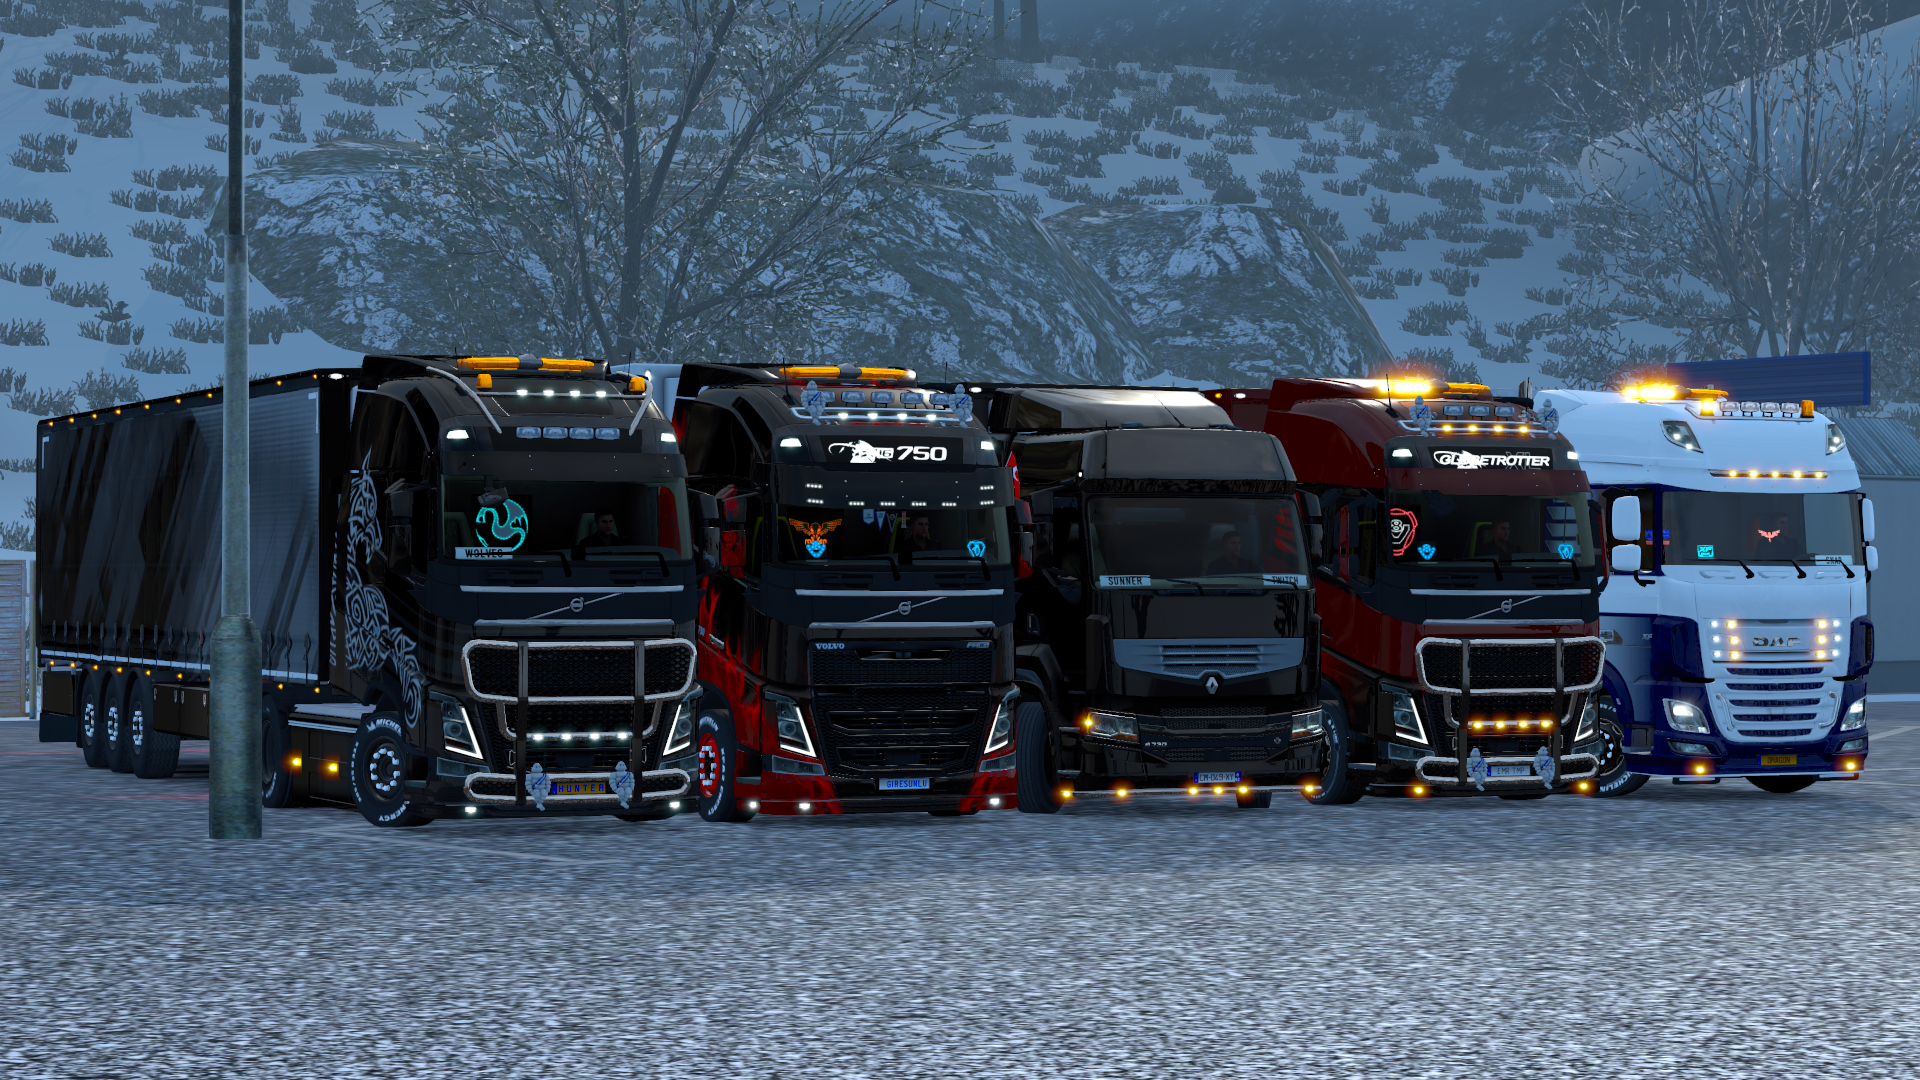 ets2_20190112_193125_00.png